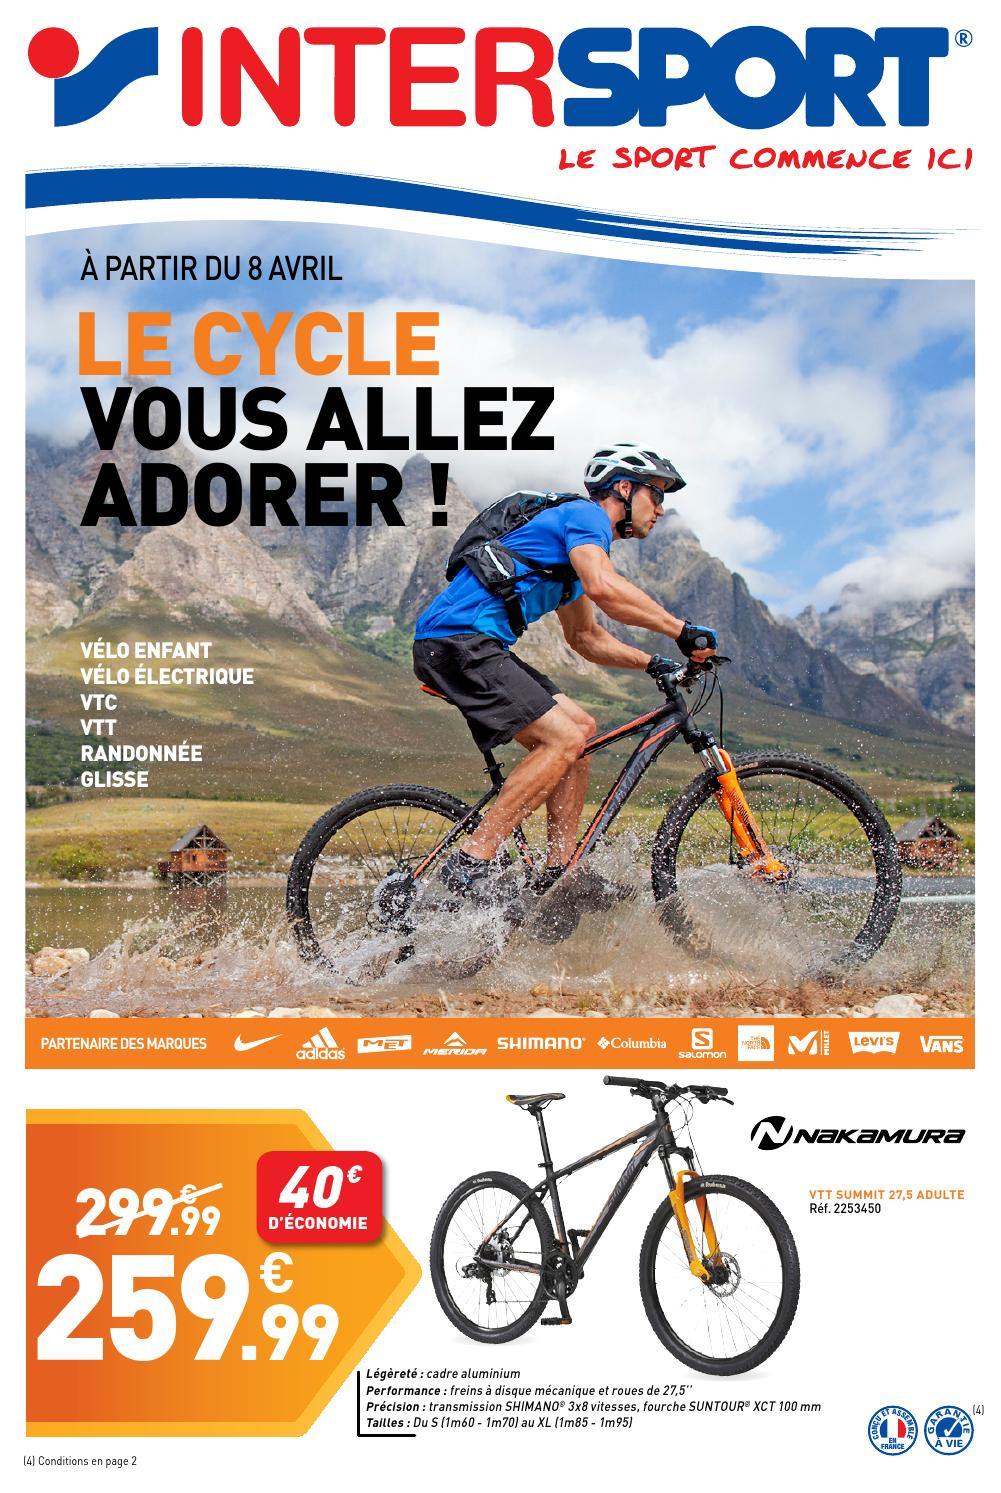 France Intersport IntersportLe CycleVous Allez AdorerBy Issuu UVSqzMpG